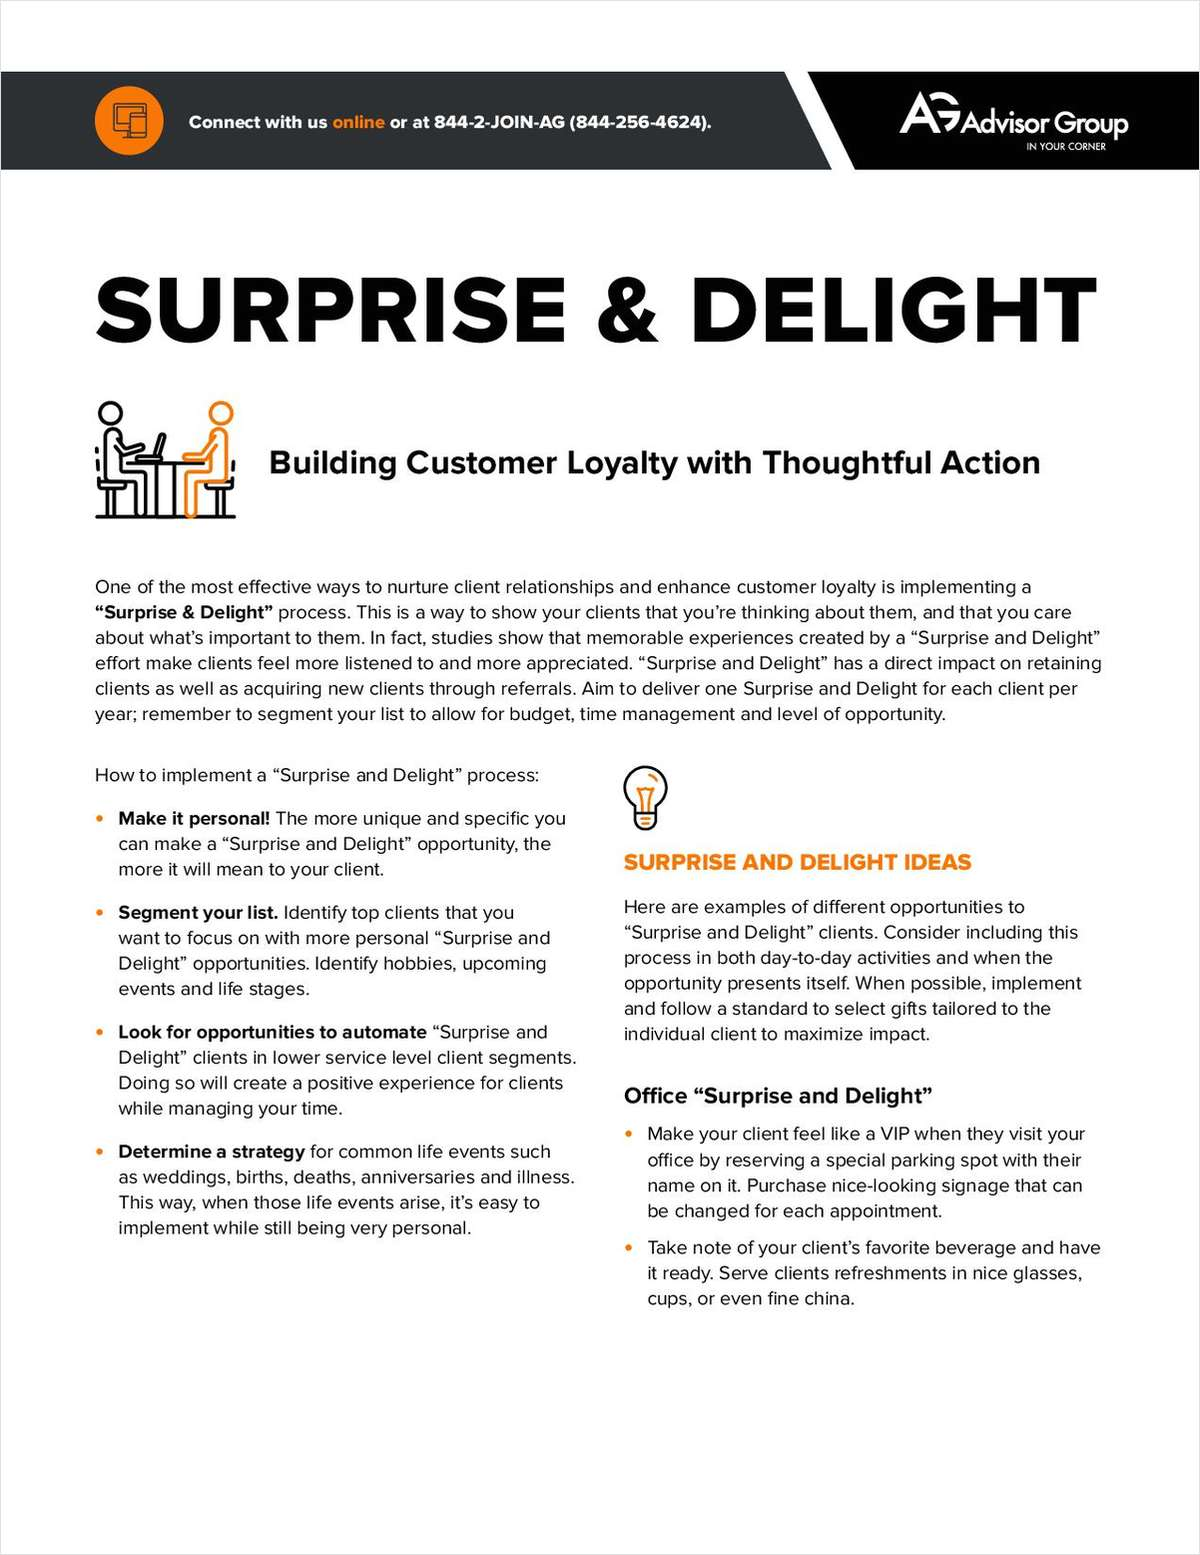 Surprise & Delight: Building Customer Loyalty with Thoughtful Action